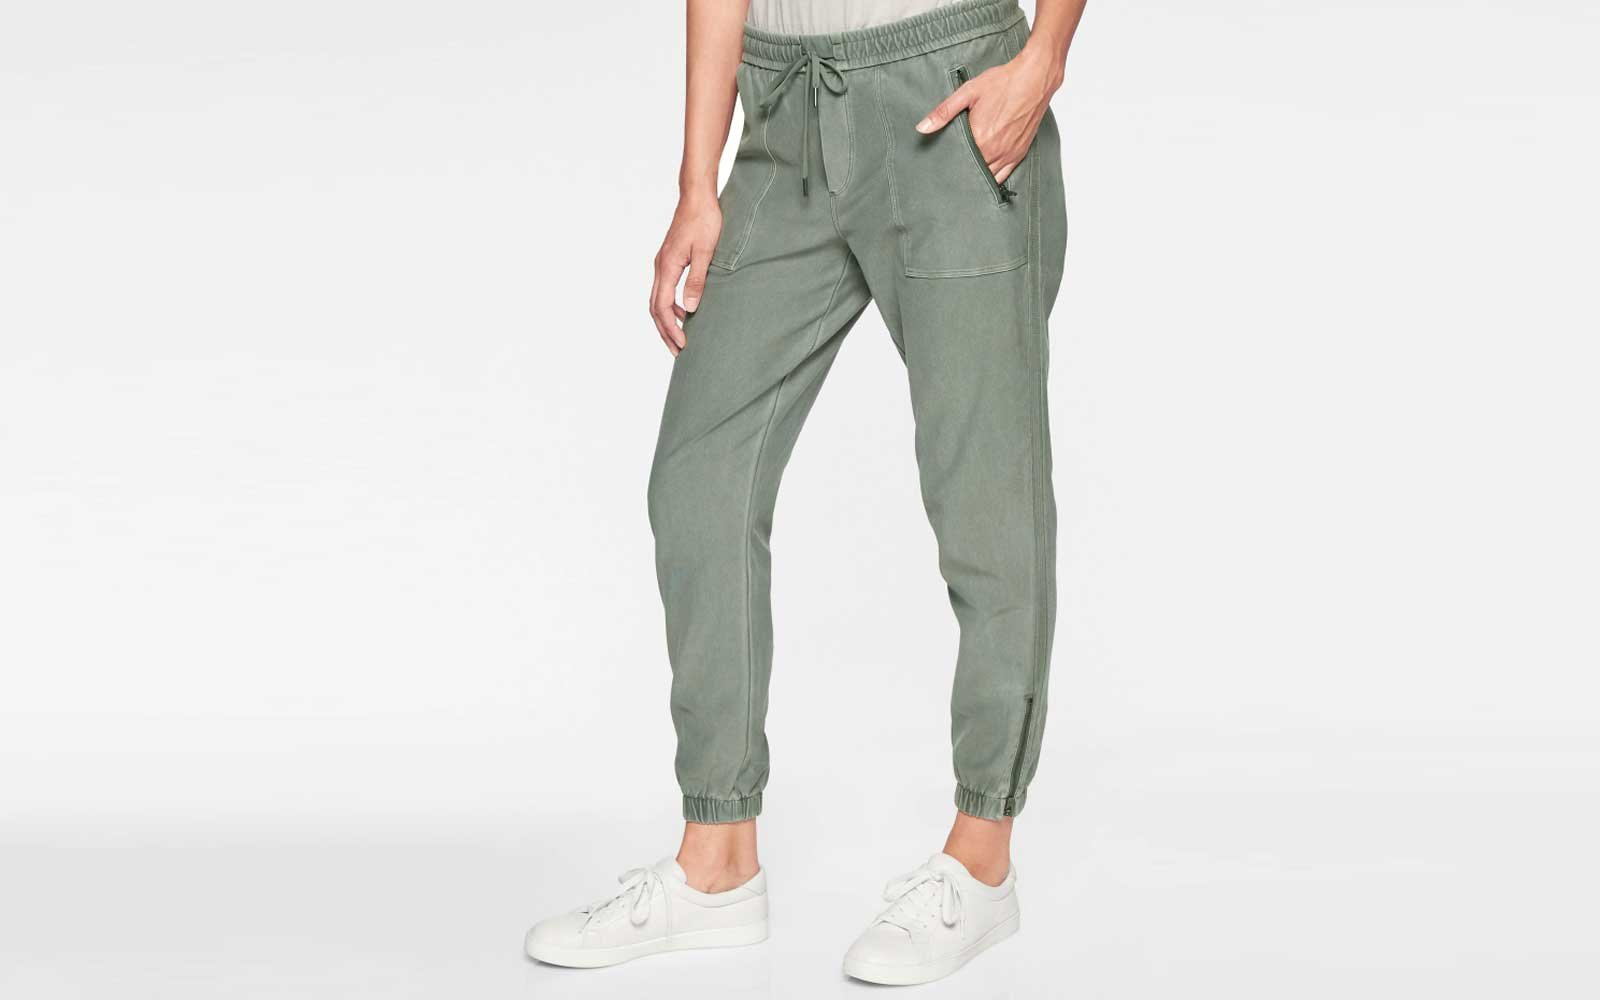 fba07fa105192c The Best Travel Pants for Women Who Hate Flying in Jeans | Travel + ...